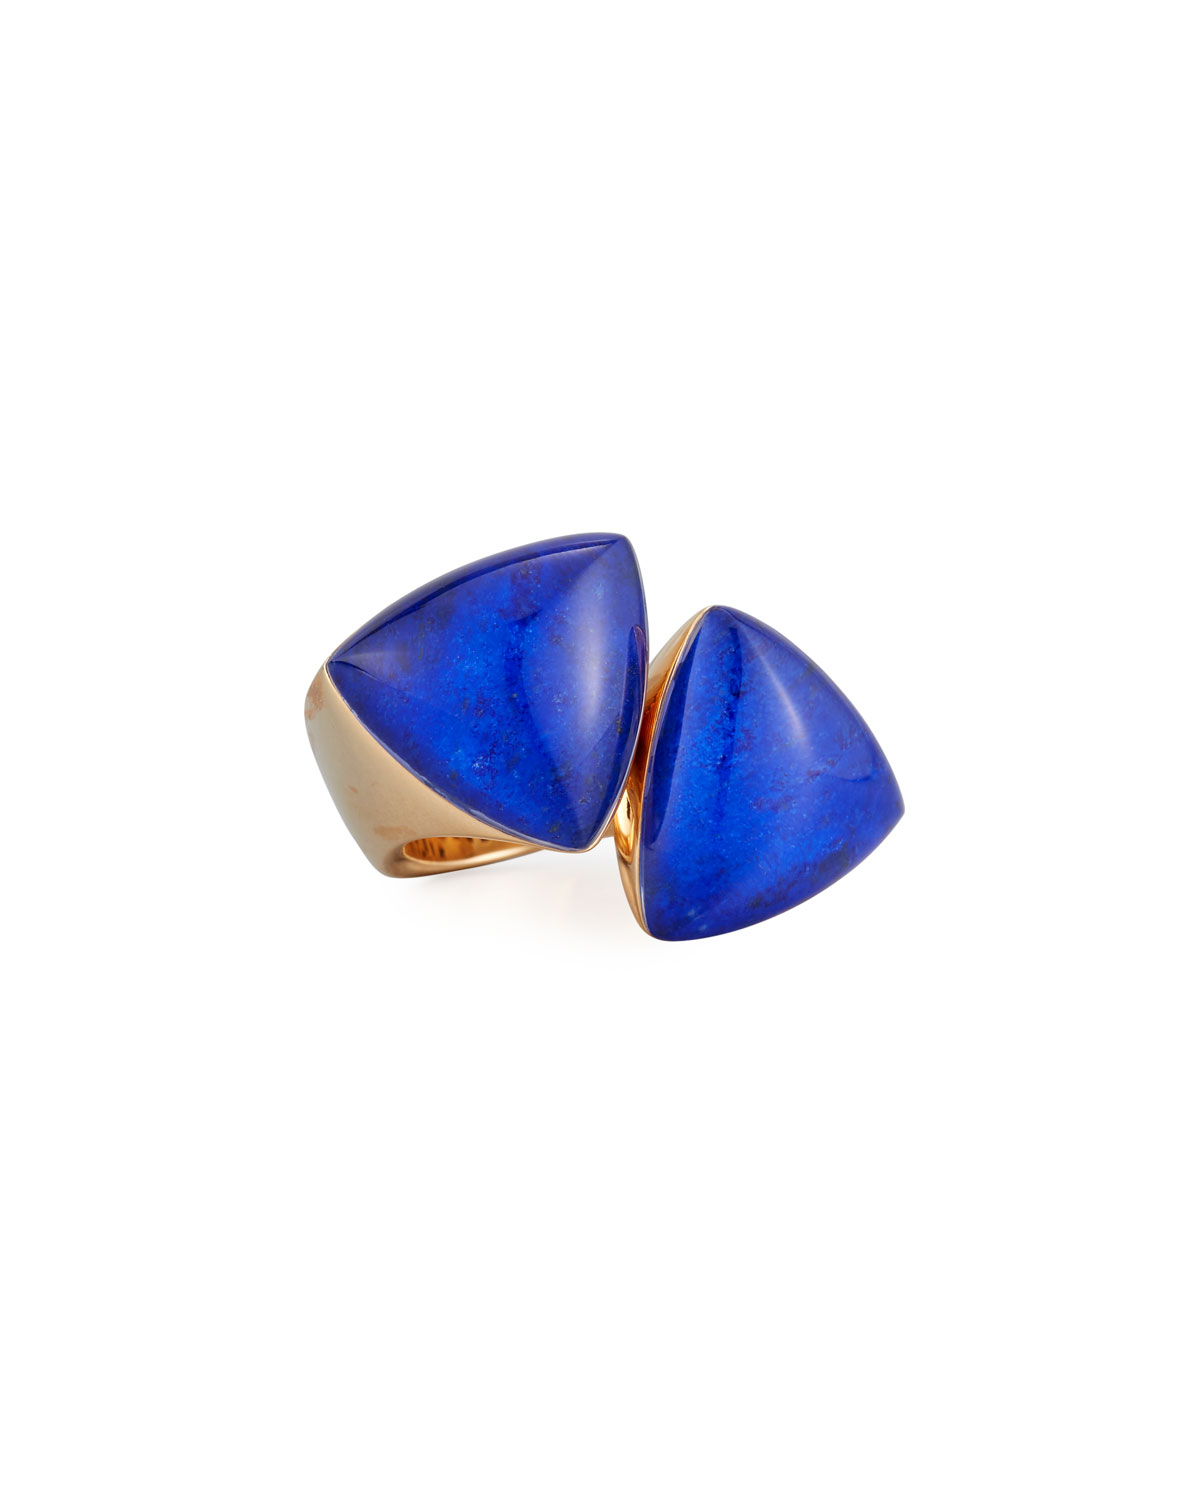 VHERNIER FRECCIA 18K ROSE GOLD & LAPIS RING